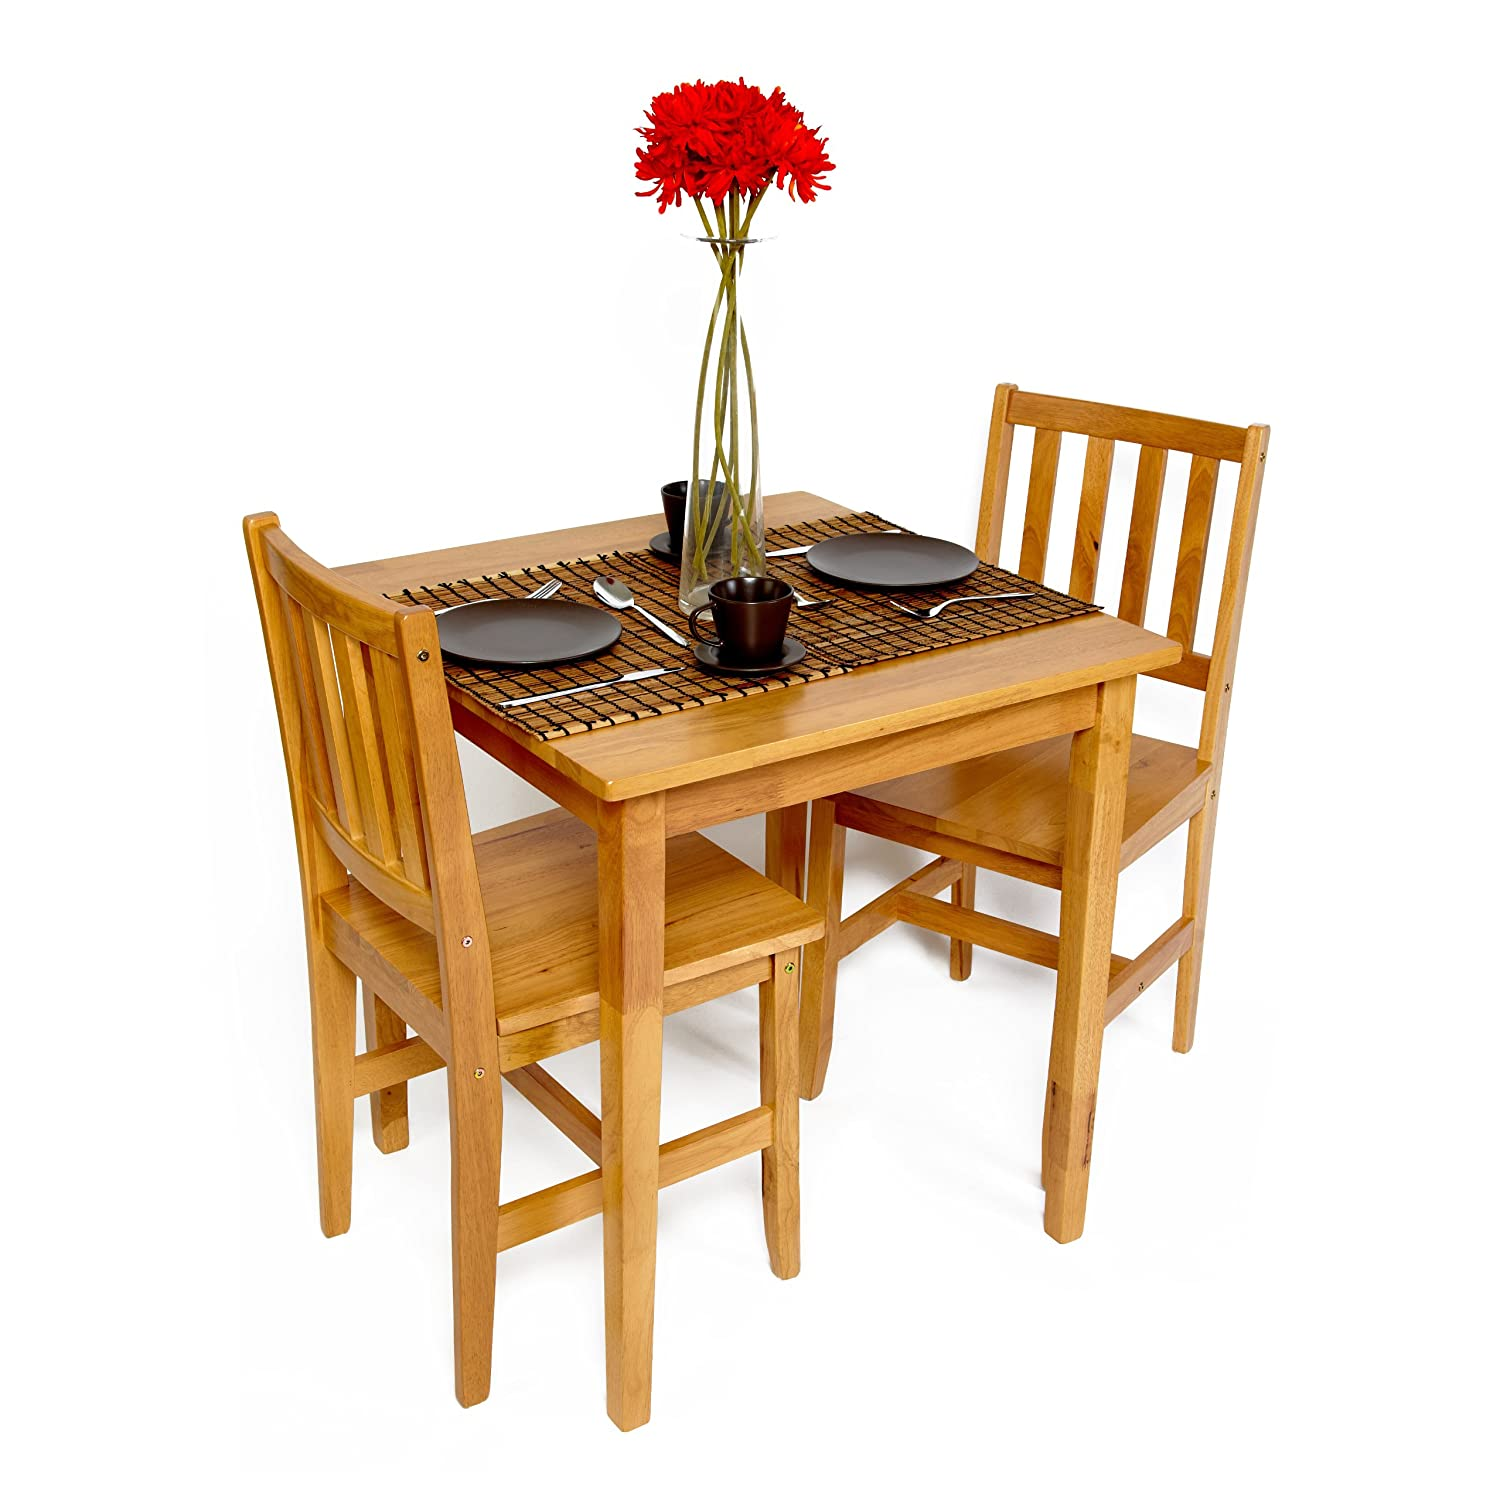 Table and chairs set dining bistro small cafe tables wood for Small wooden dining table set